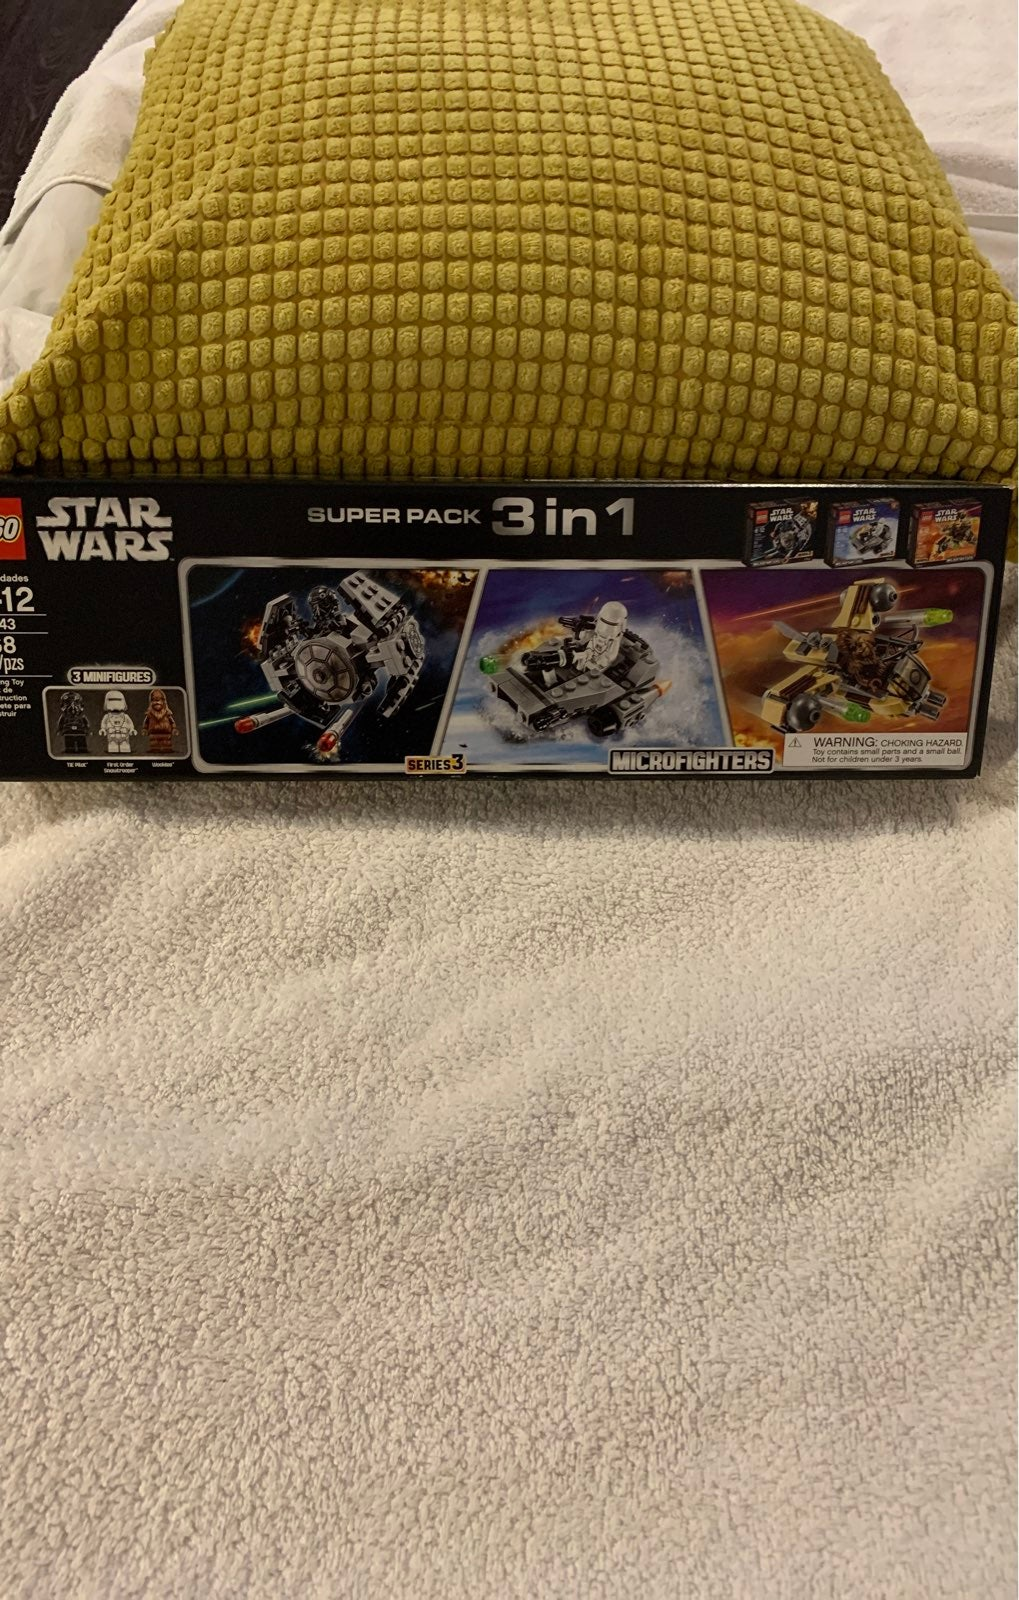 LEGO Star Wars 66543 Microfighter 3 in 1